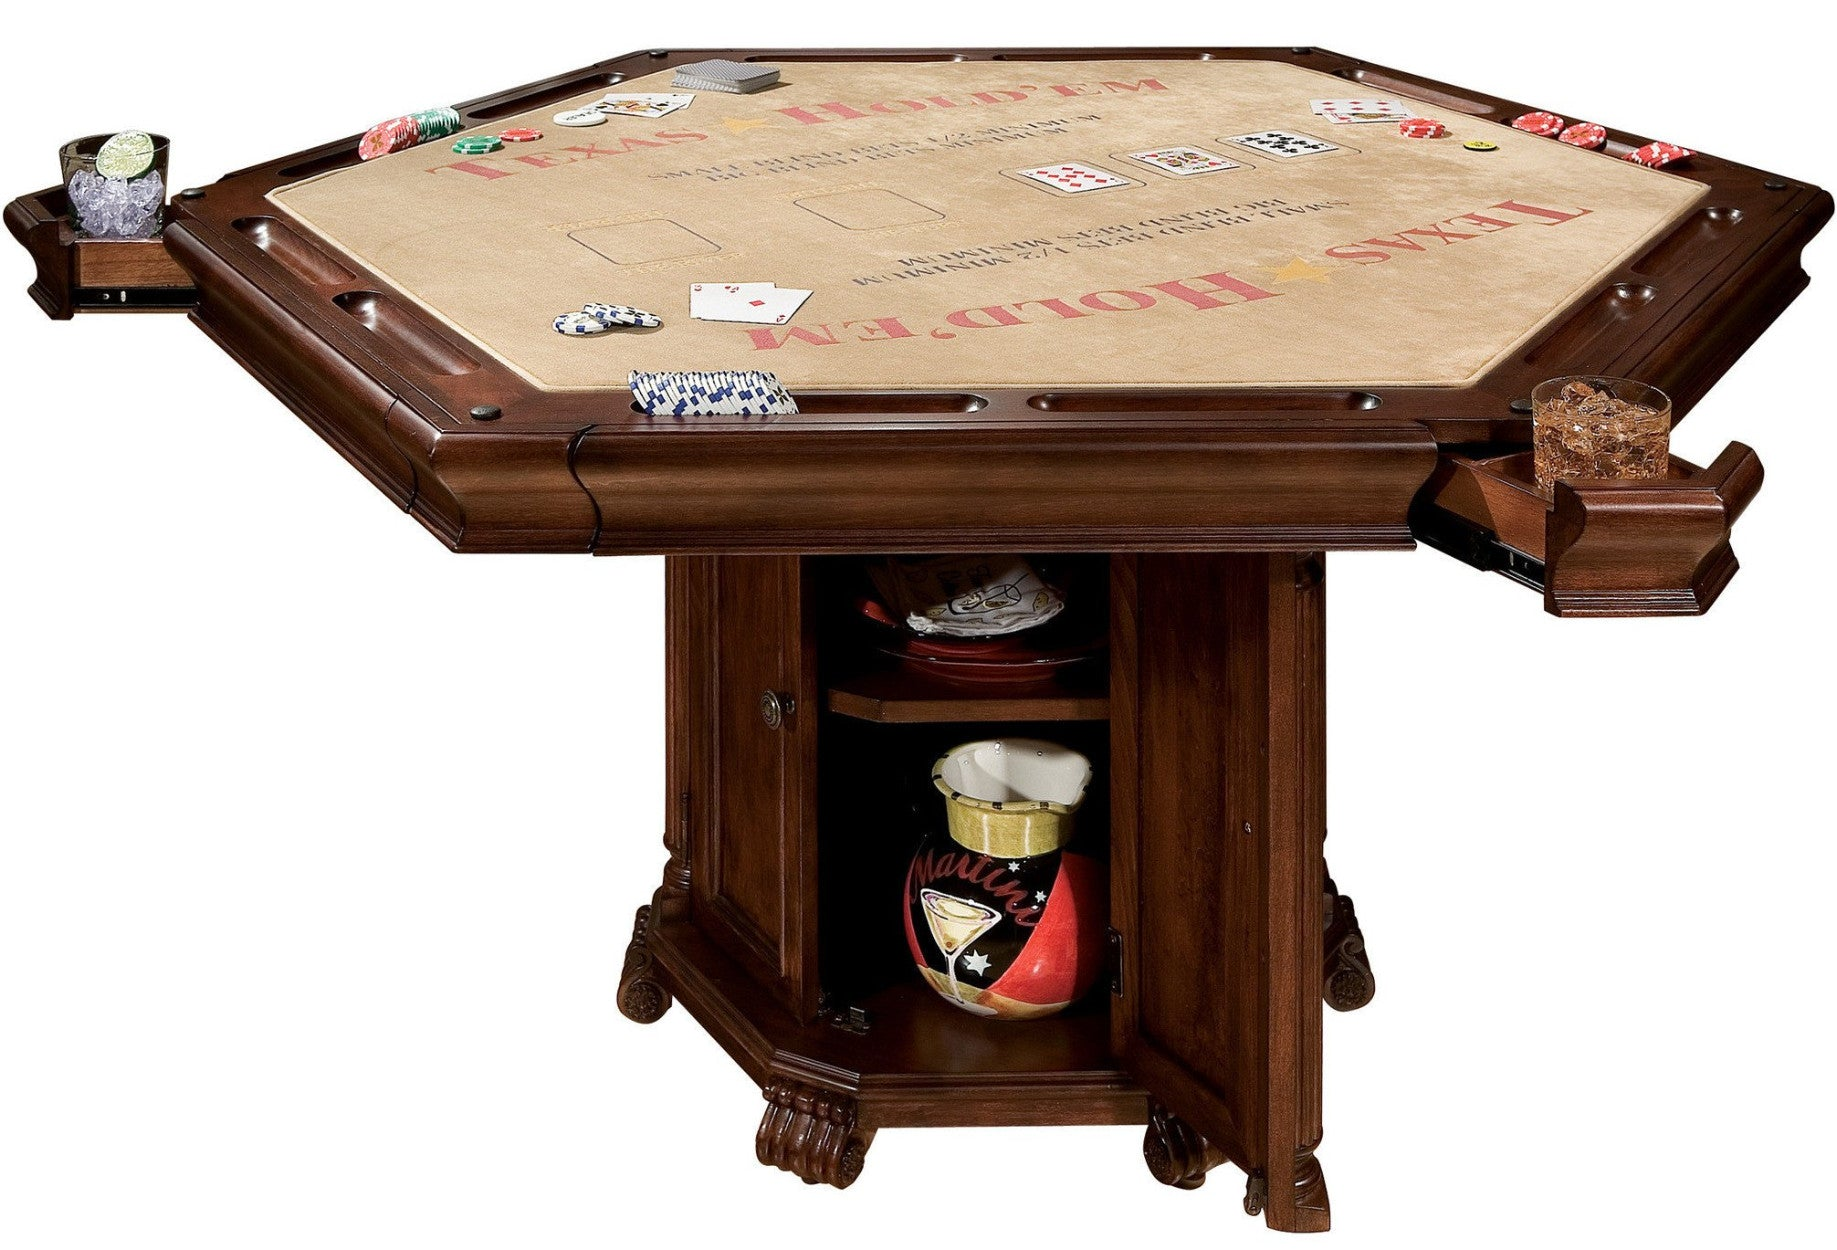 CONVERTIBLE POKER AND DINING TABLE NIAGARA BY HOWARD MILLER